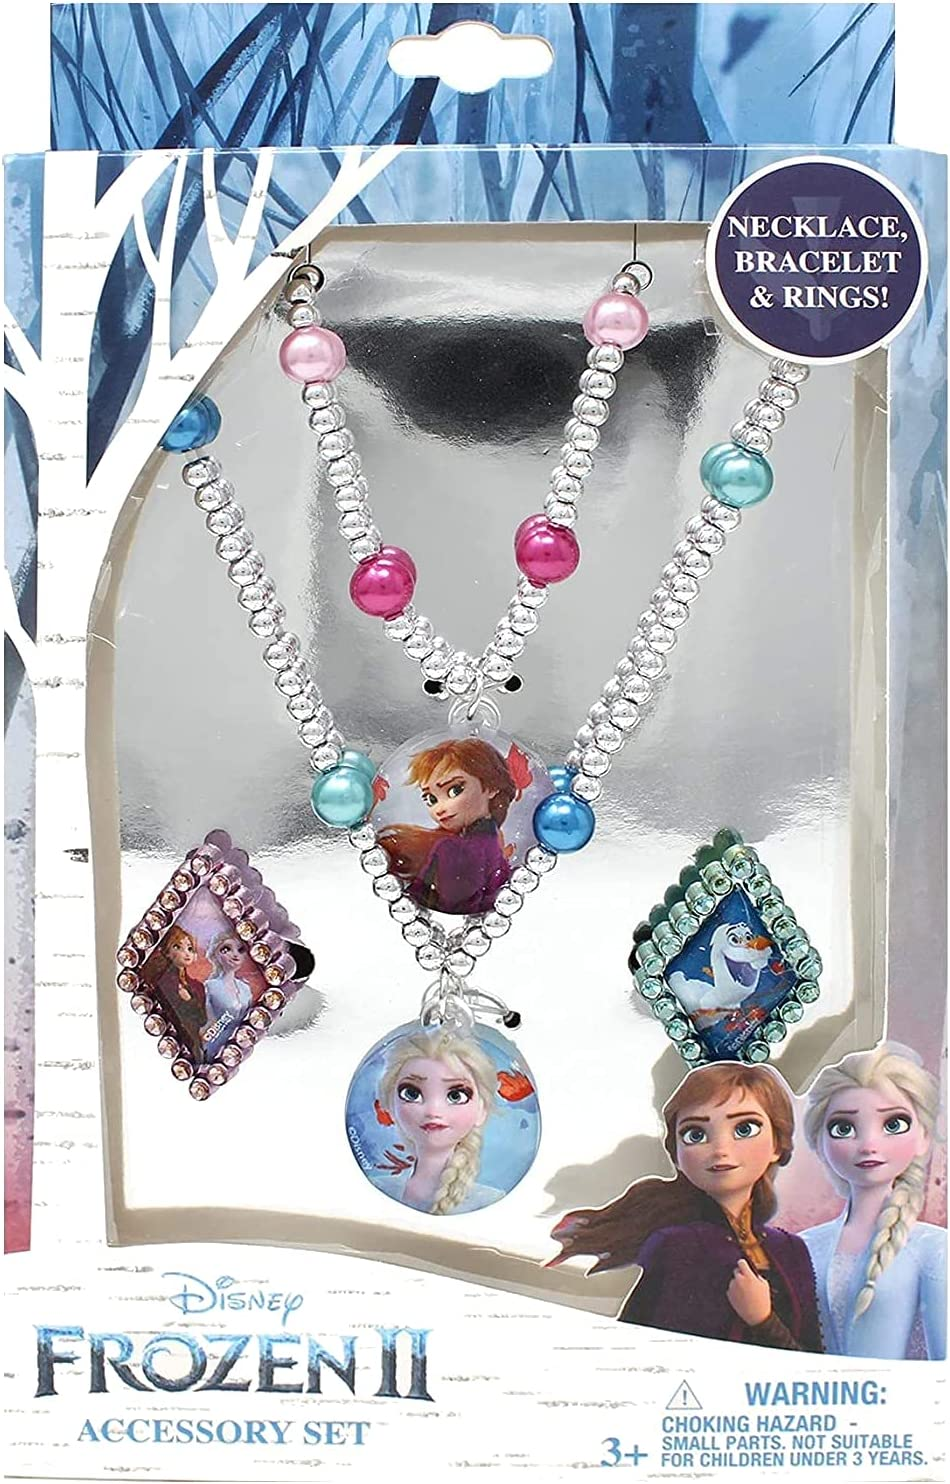 Frozen 2 Girls 4 Piece Costume Toy with R Set Box Online limited Indefinitely product Silver Jewelry